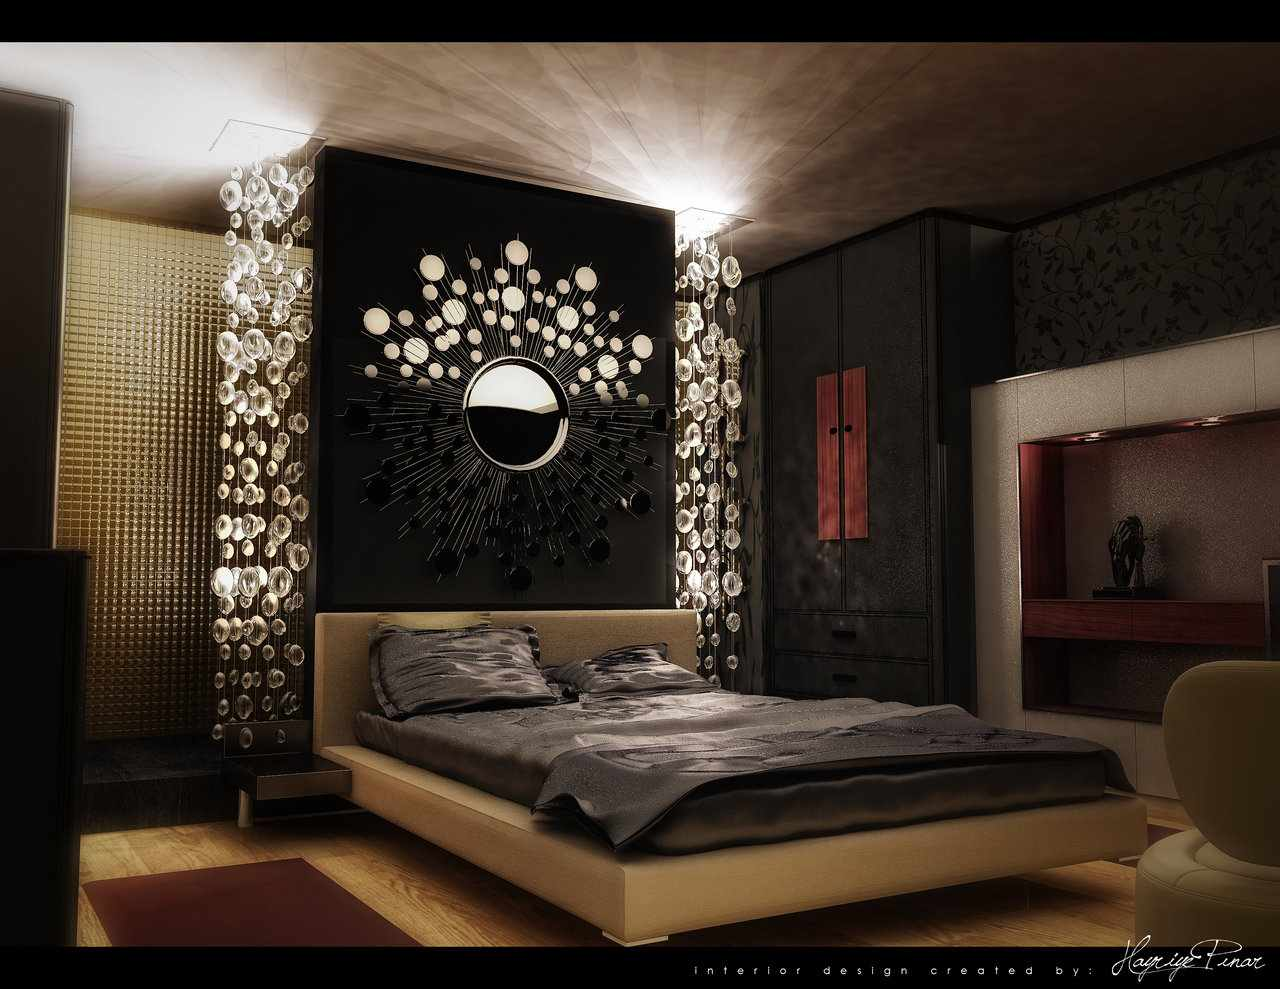 Ikea bedroom ideas ikea bedroom 2014 ideas room design for Bedroom makeover inspiration